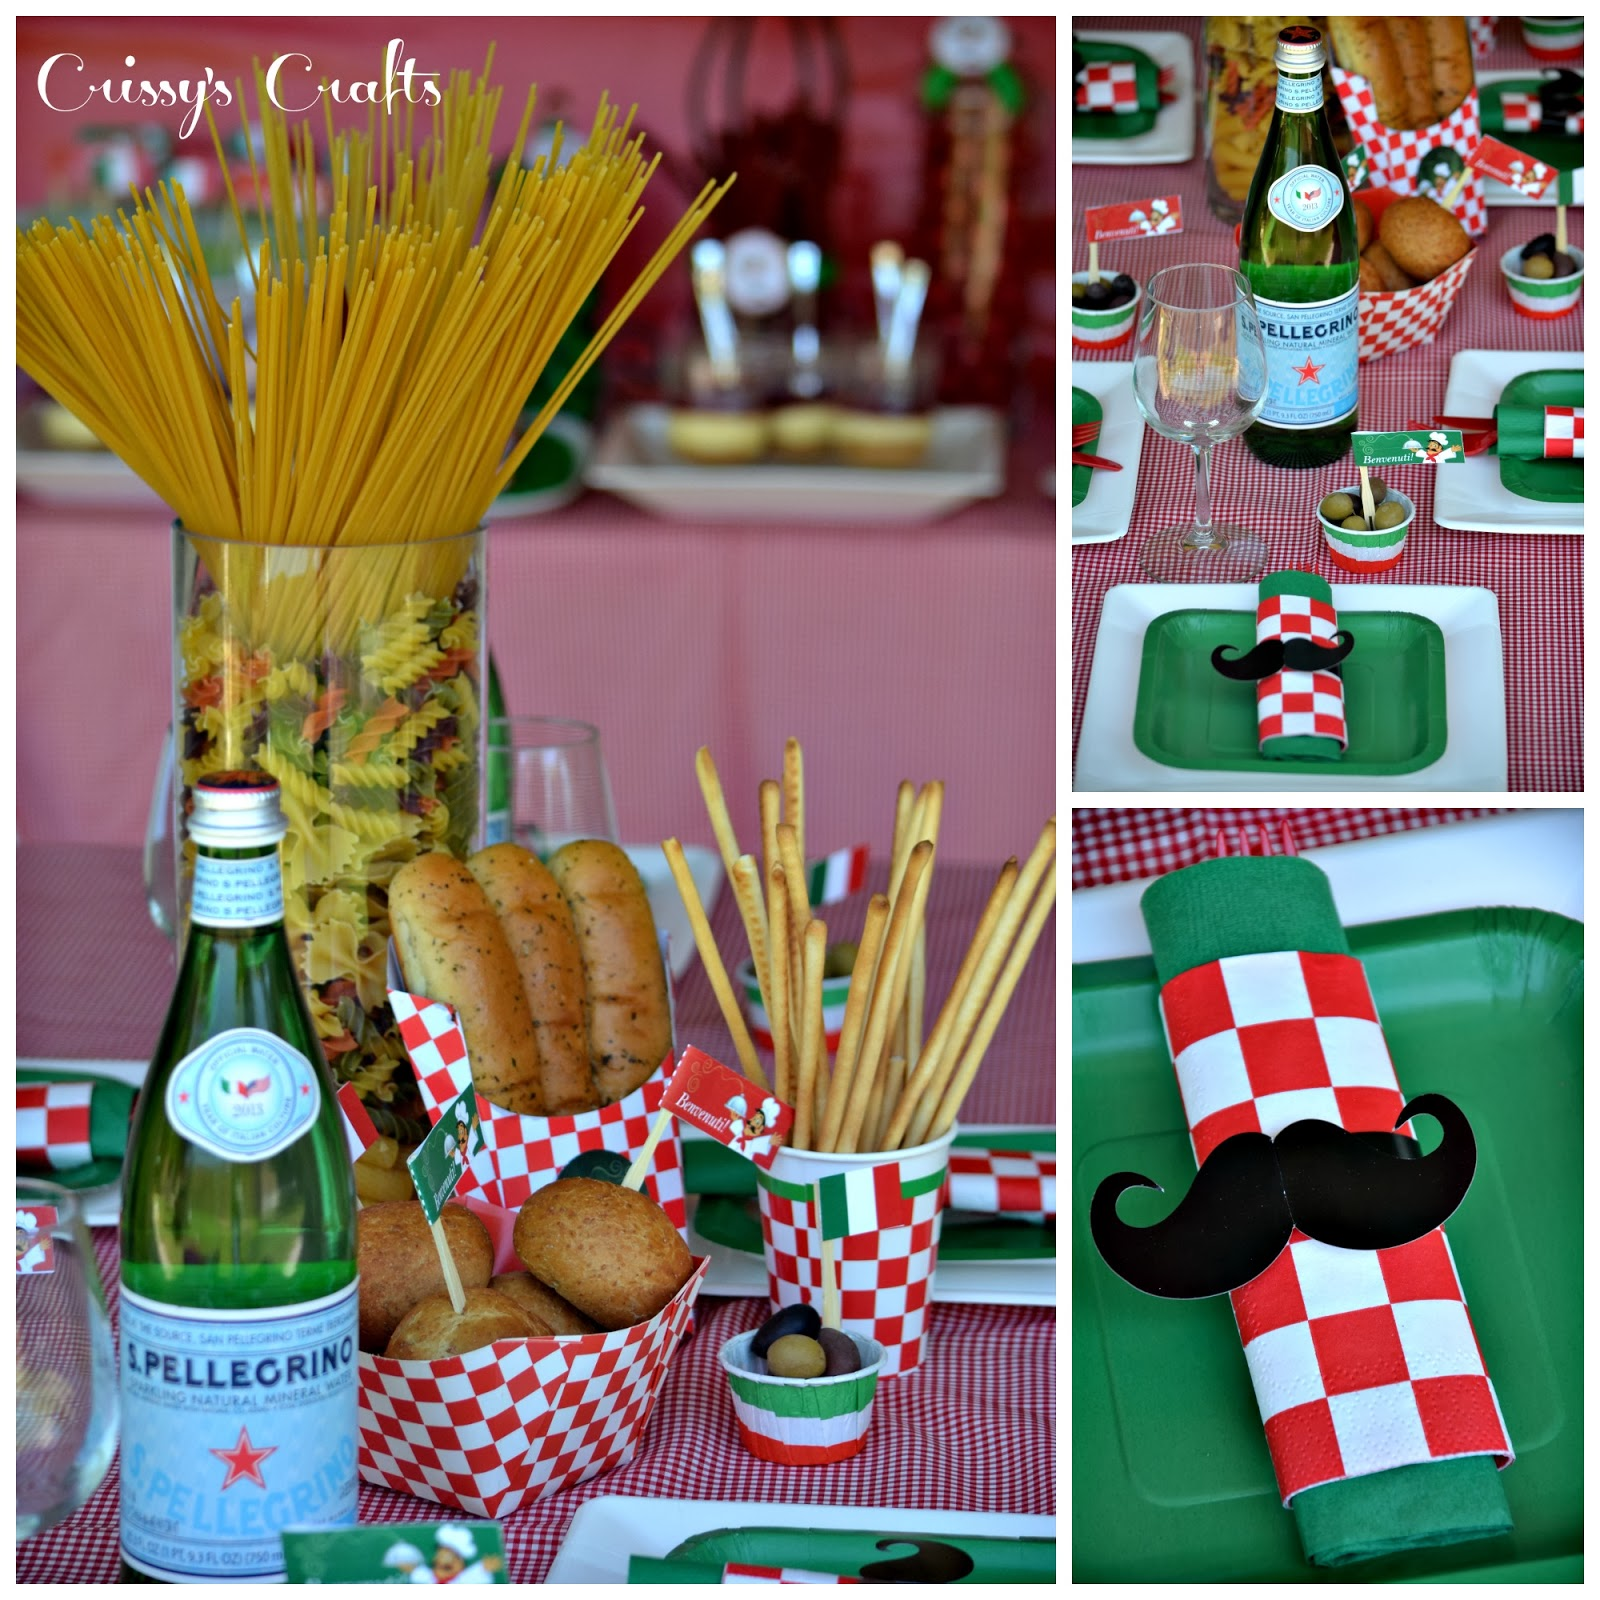 Italian Restaurant Decoration Supply : Crissy s crafts girl scouts italian night simple meals